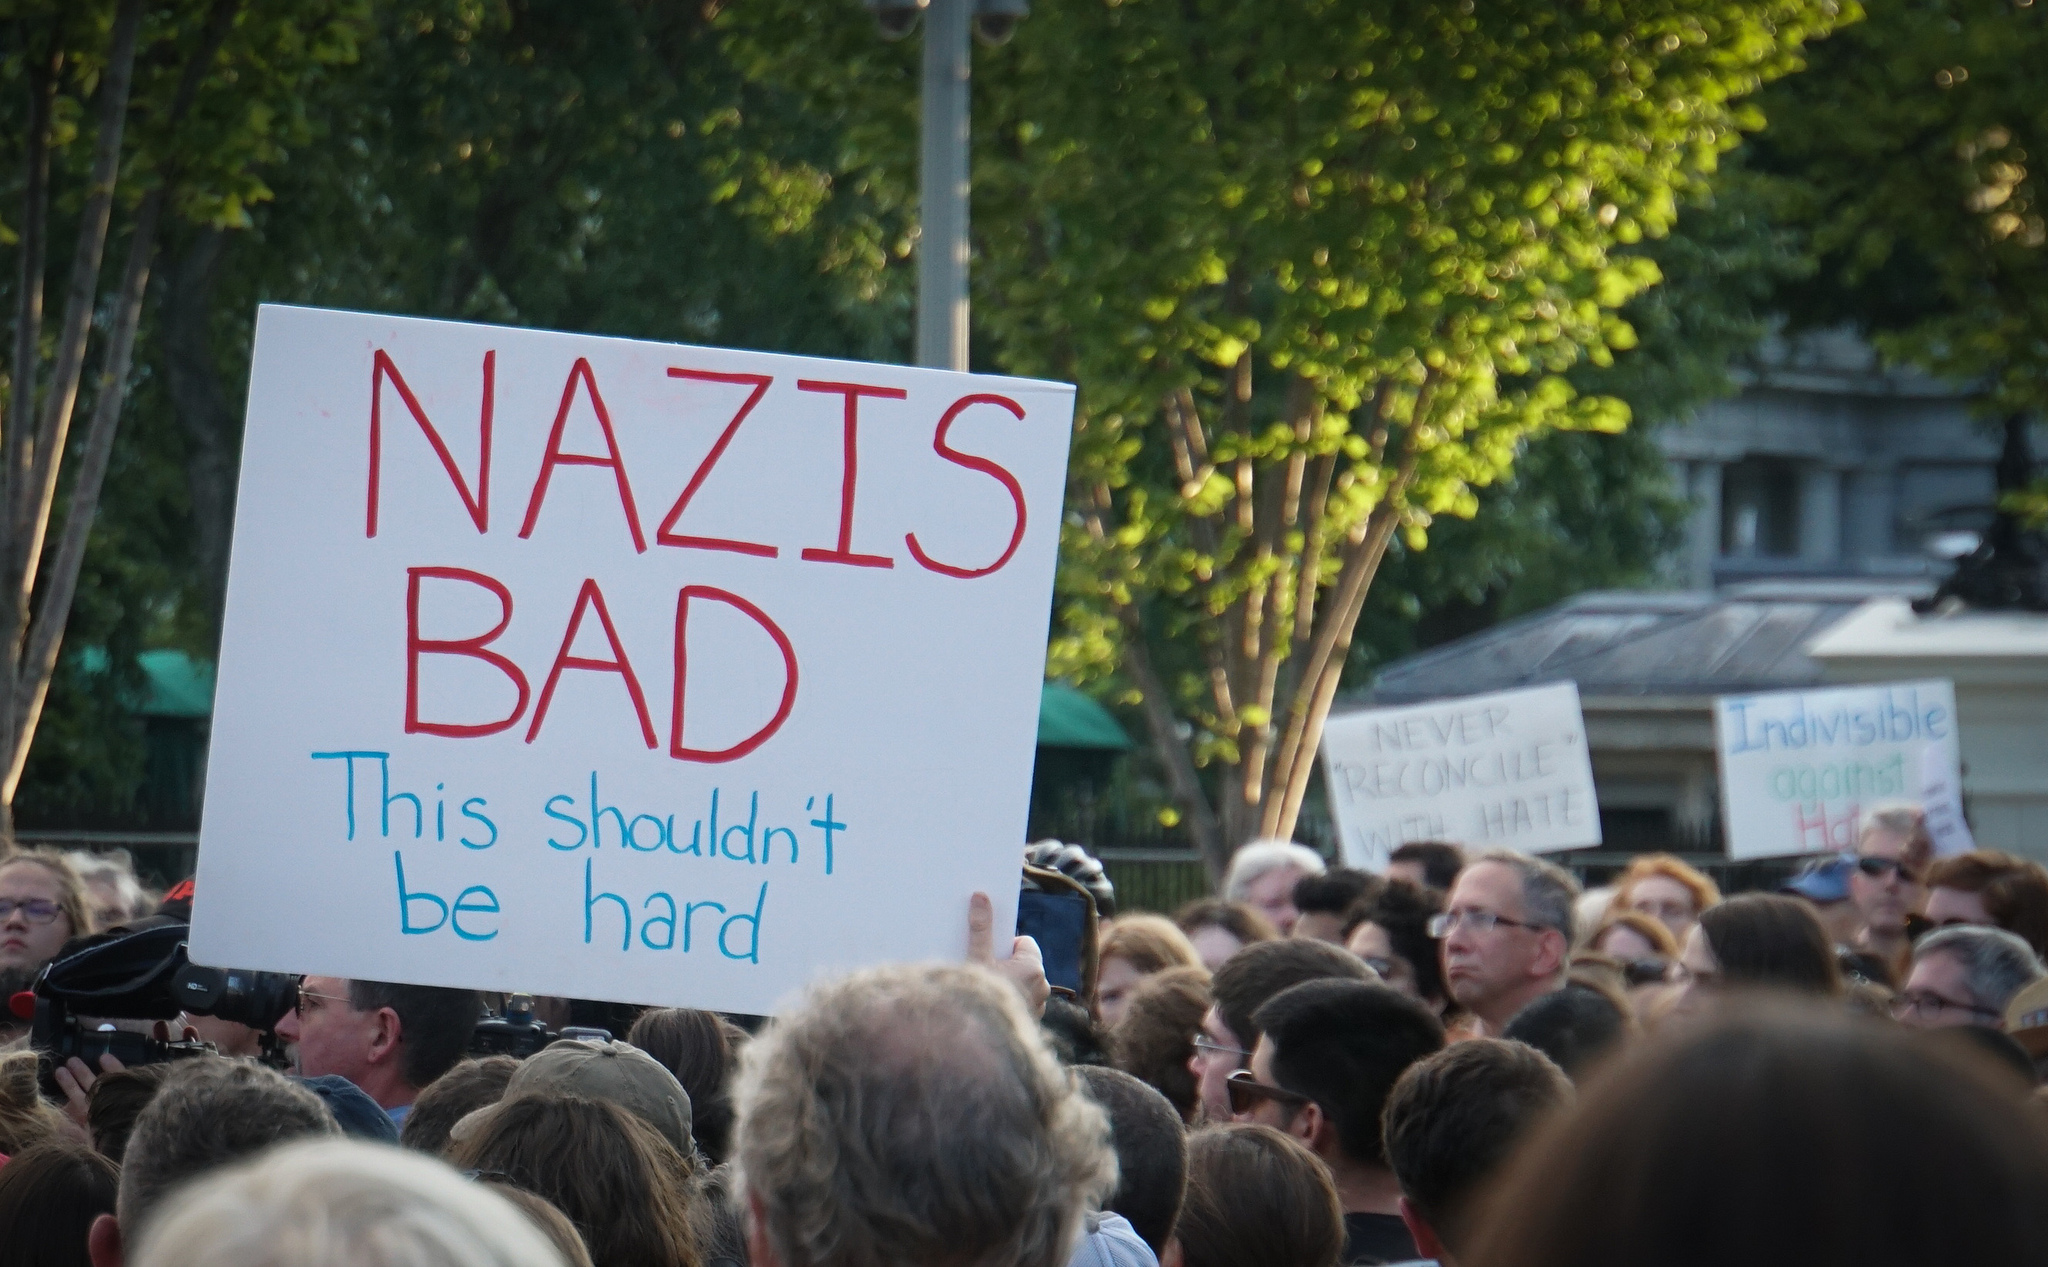 A candlelight vigil at the White House on Sunday, after the racist violence in Charlottesville, Virginia.